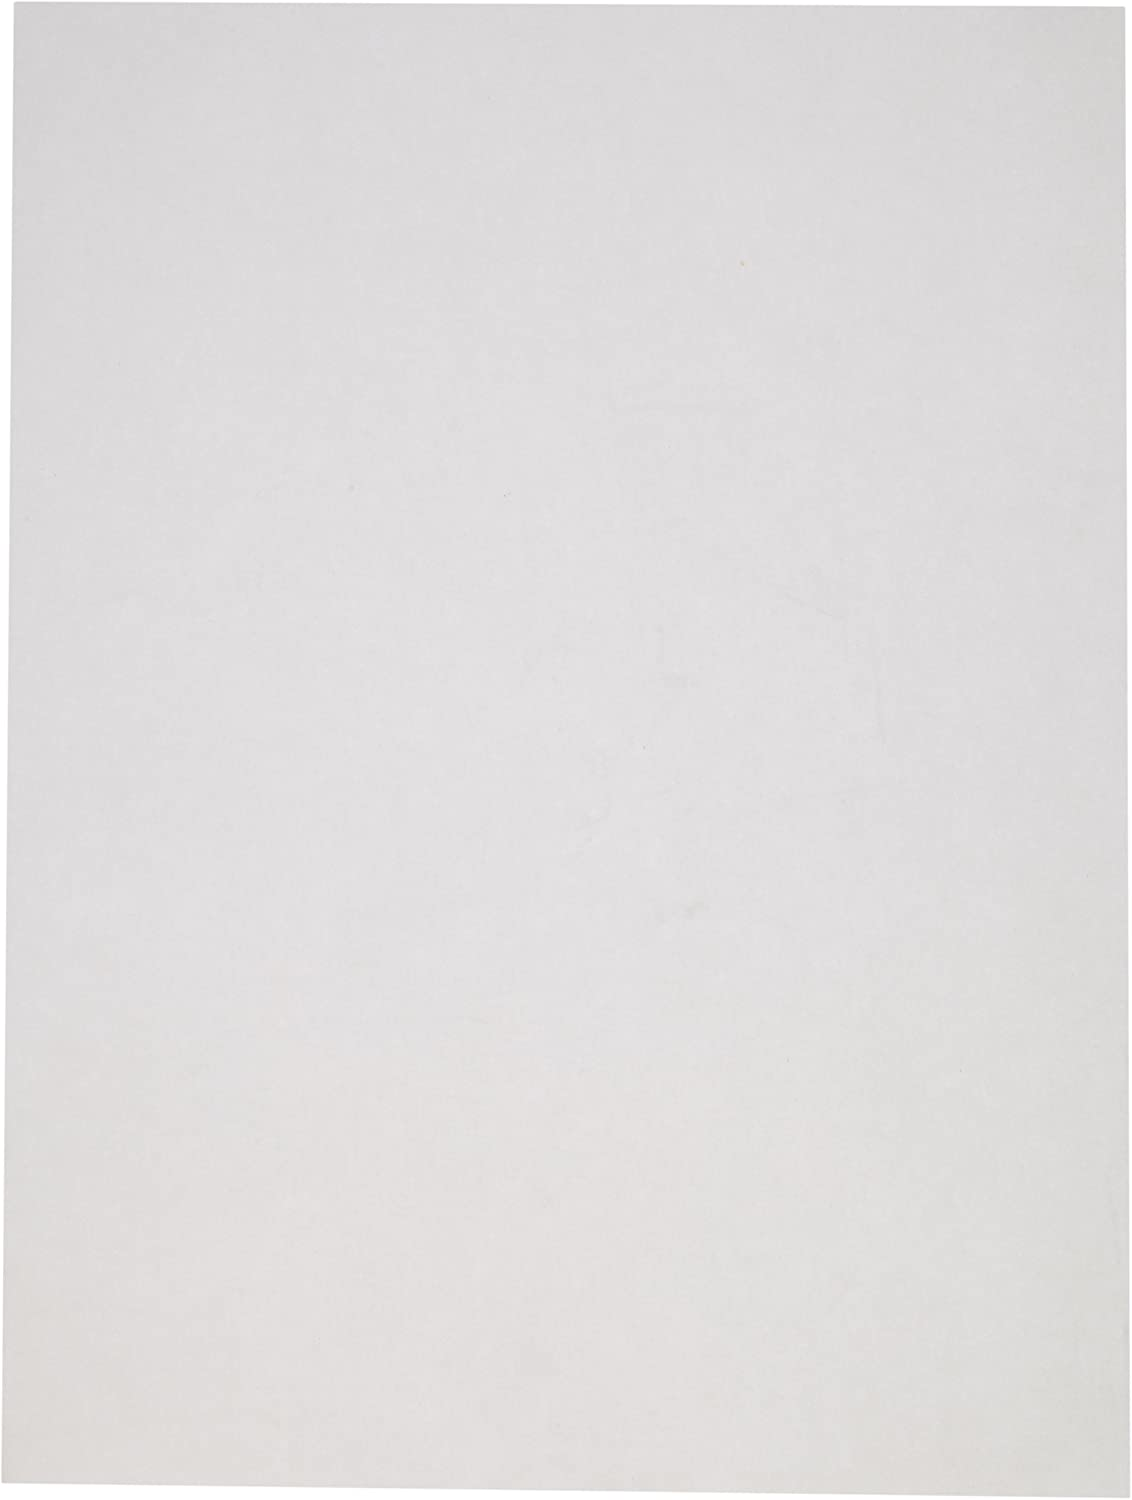 Sax Sulphite Drawing Paper, 9 x 12 Inches, Extra-White, Pack of 500 - 053931: Industrial & Scientific